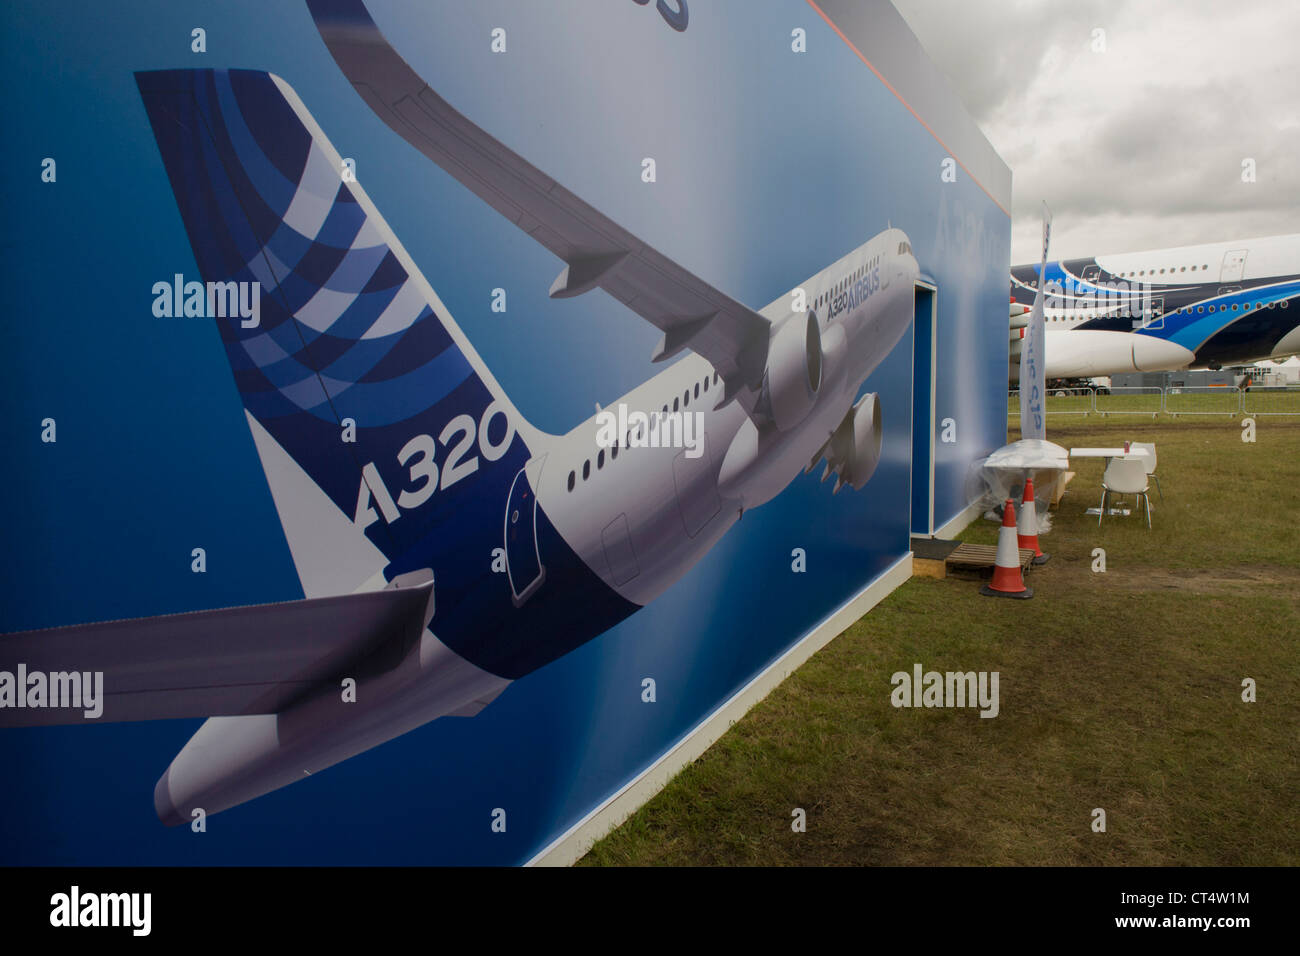 Landscape of a mural artwork of an A320 airliner outside one of the EADS company's chalets at the Farnborough - Stock Image